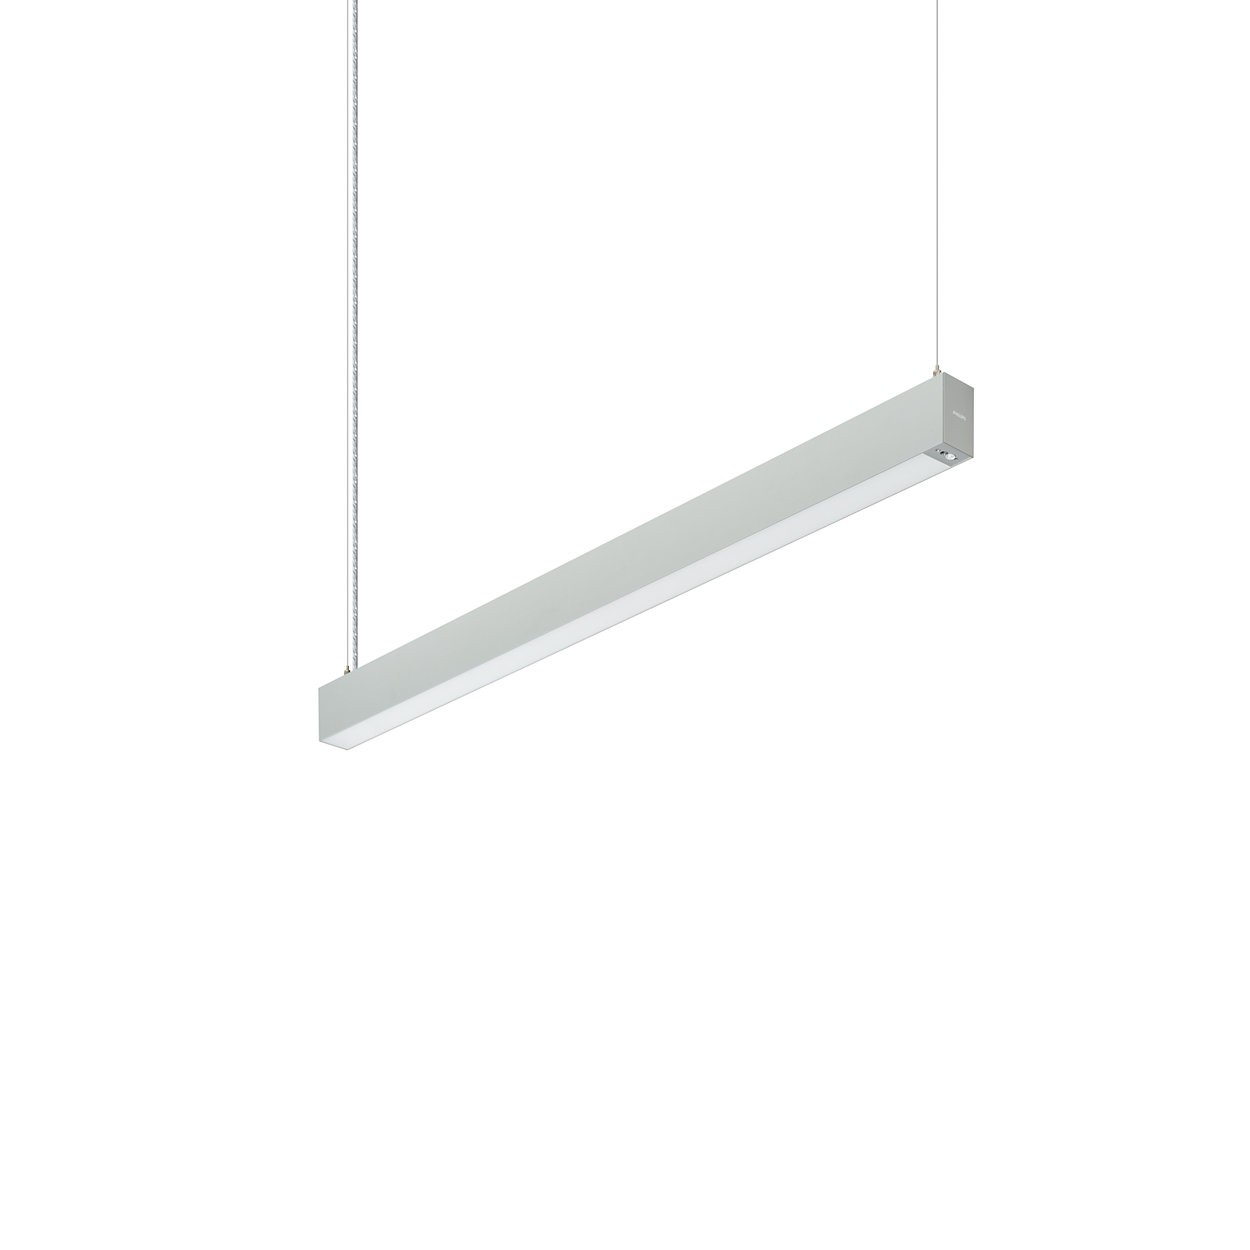 TrueLine, suspended - True line of light: elegant, energy-efficient and compliant with office lighting norms